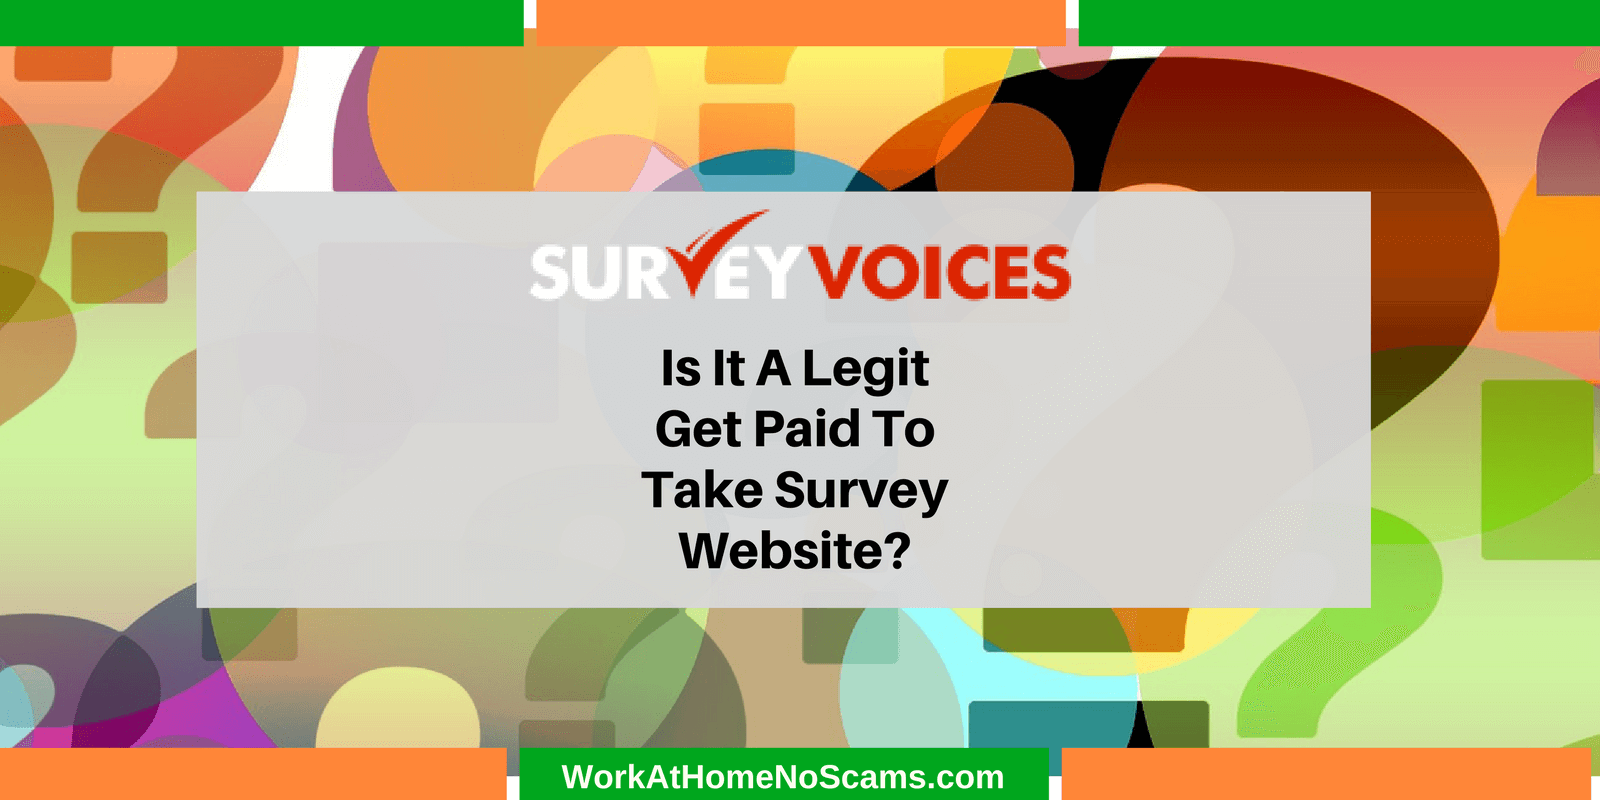 Survey Voices Review: Is It Legit or a Waste of Your Time?